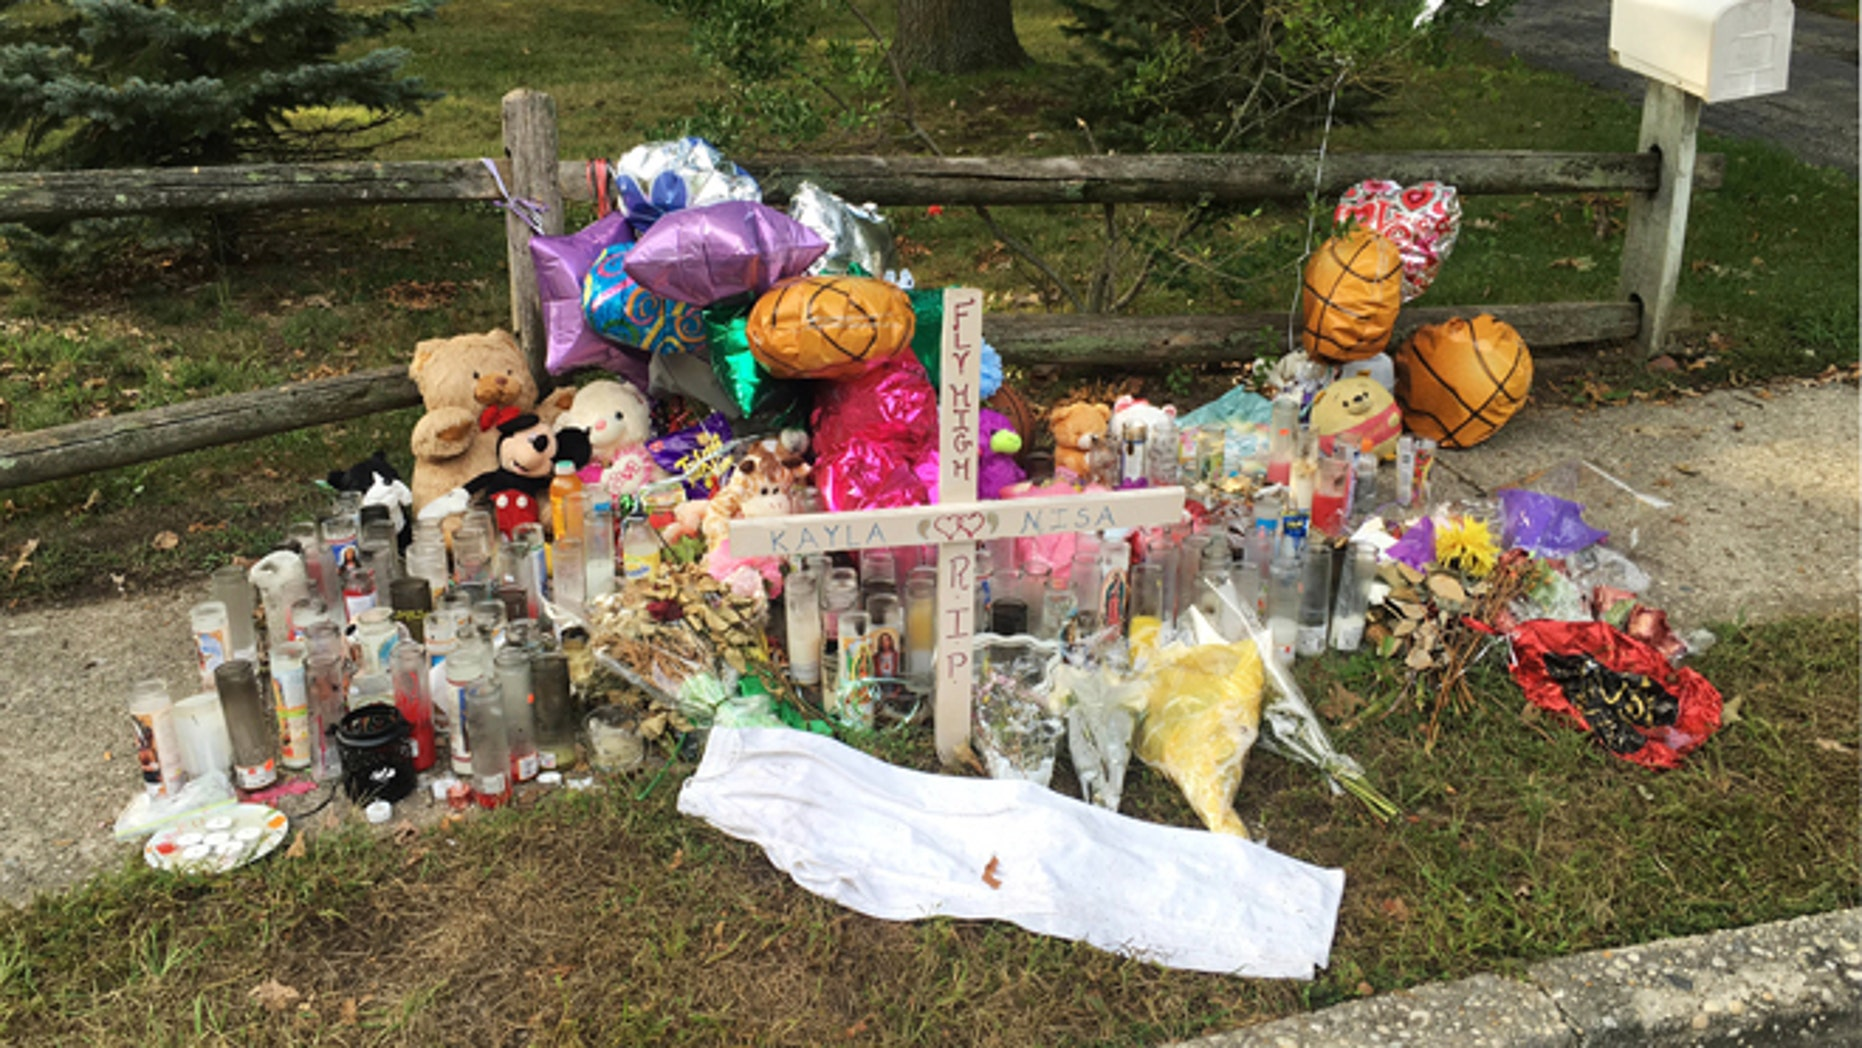 In this Sept. 27, 2016 photo, a memorial for Nisa Mickens and Kayla Cueva is located near the locations where their bodies were found in Brentwood, N.Y. The girls, who were best friends, were found murdered. Multiple teenagers from the same Long Island high school have been found dead and while police suspect all the deaths are related to gang violence, they are releasing few details.